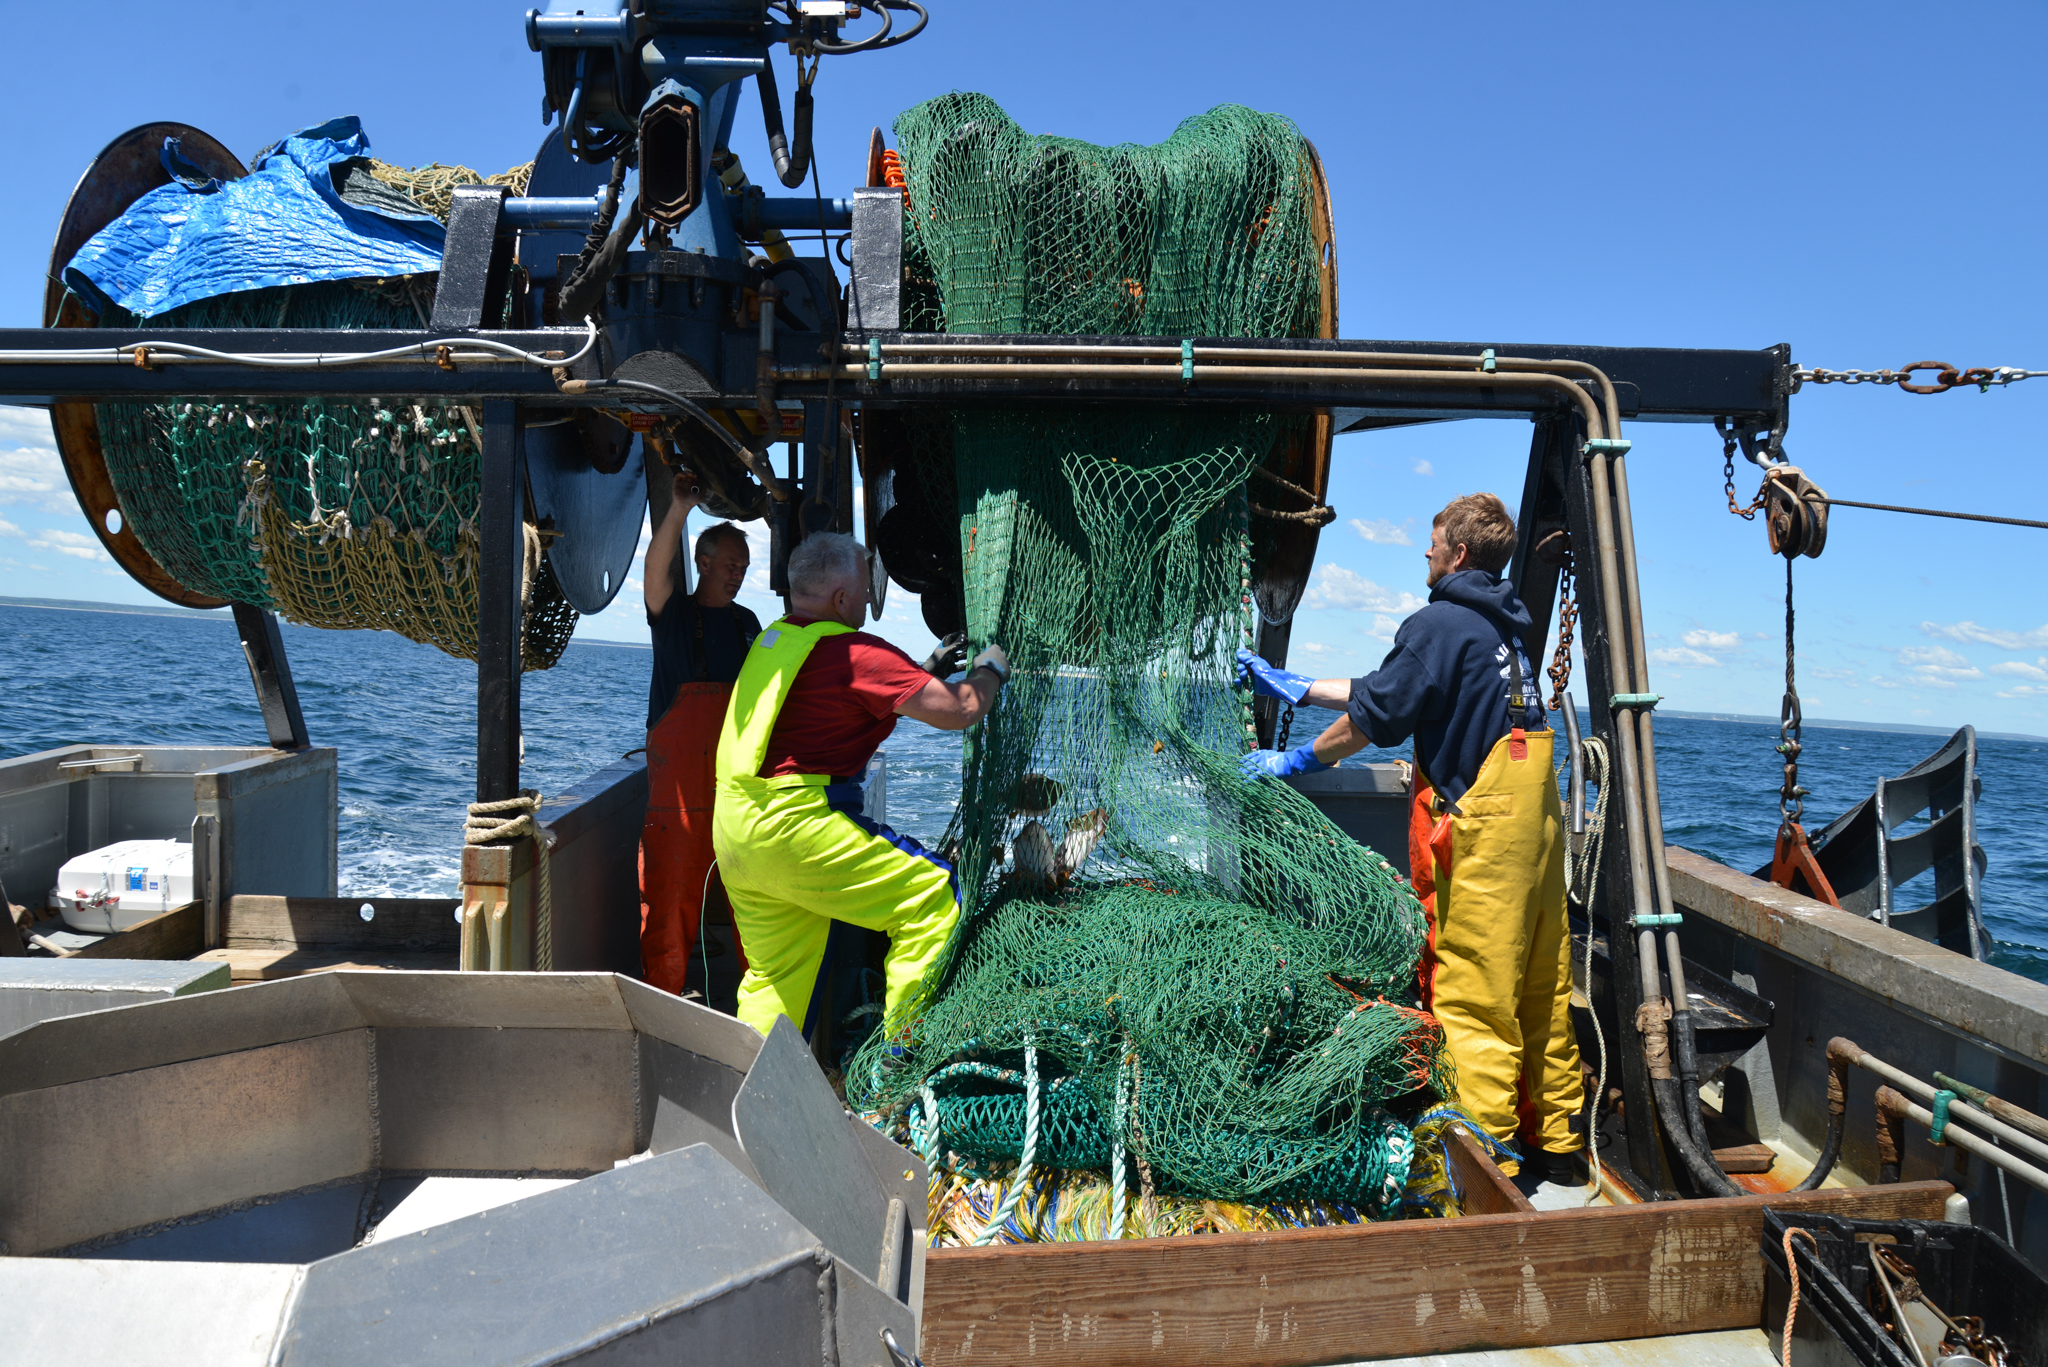 The crew of the Miss Emily tend the trawl net. Photo by Nicola Twilley